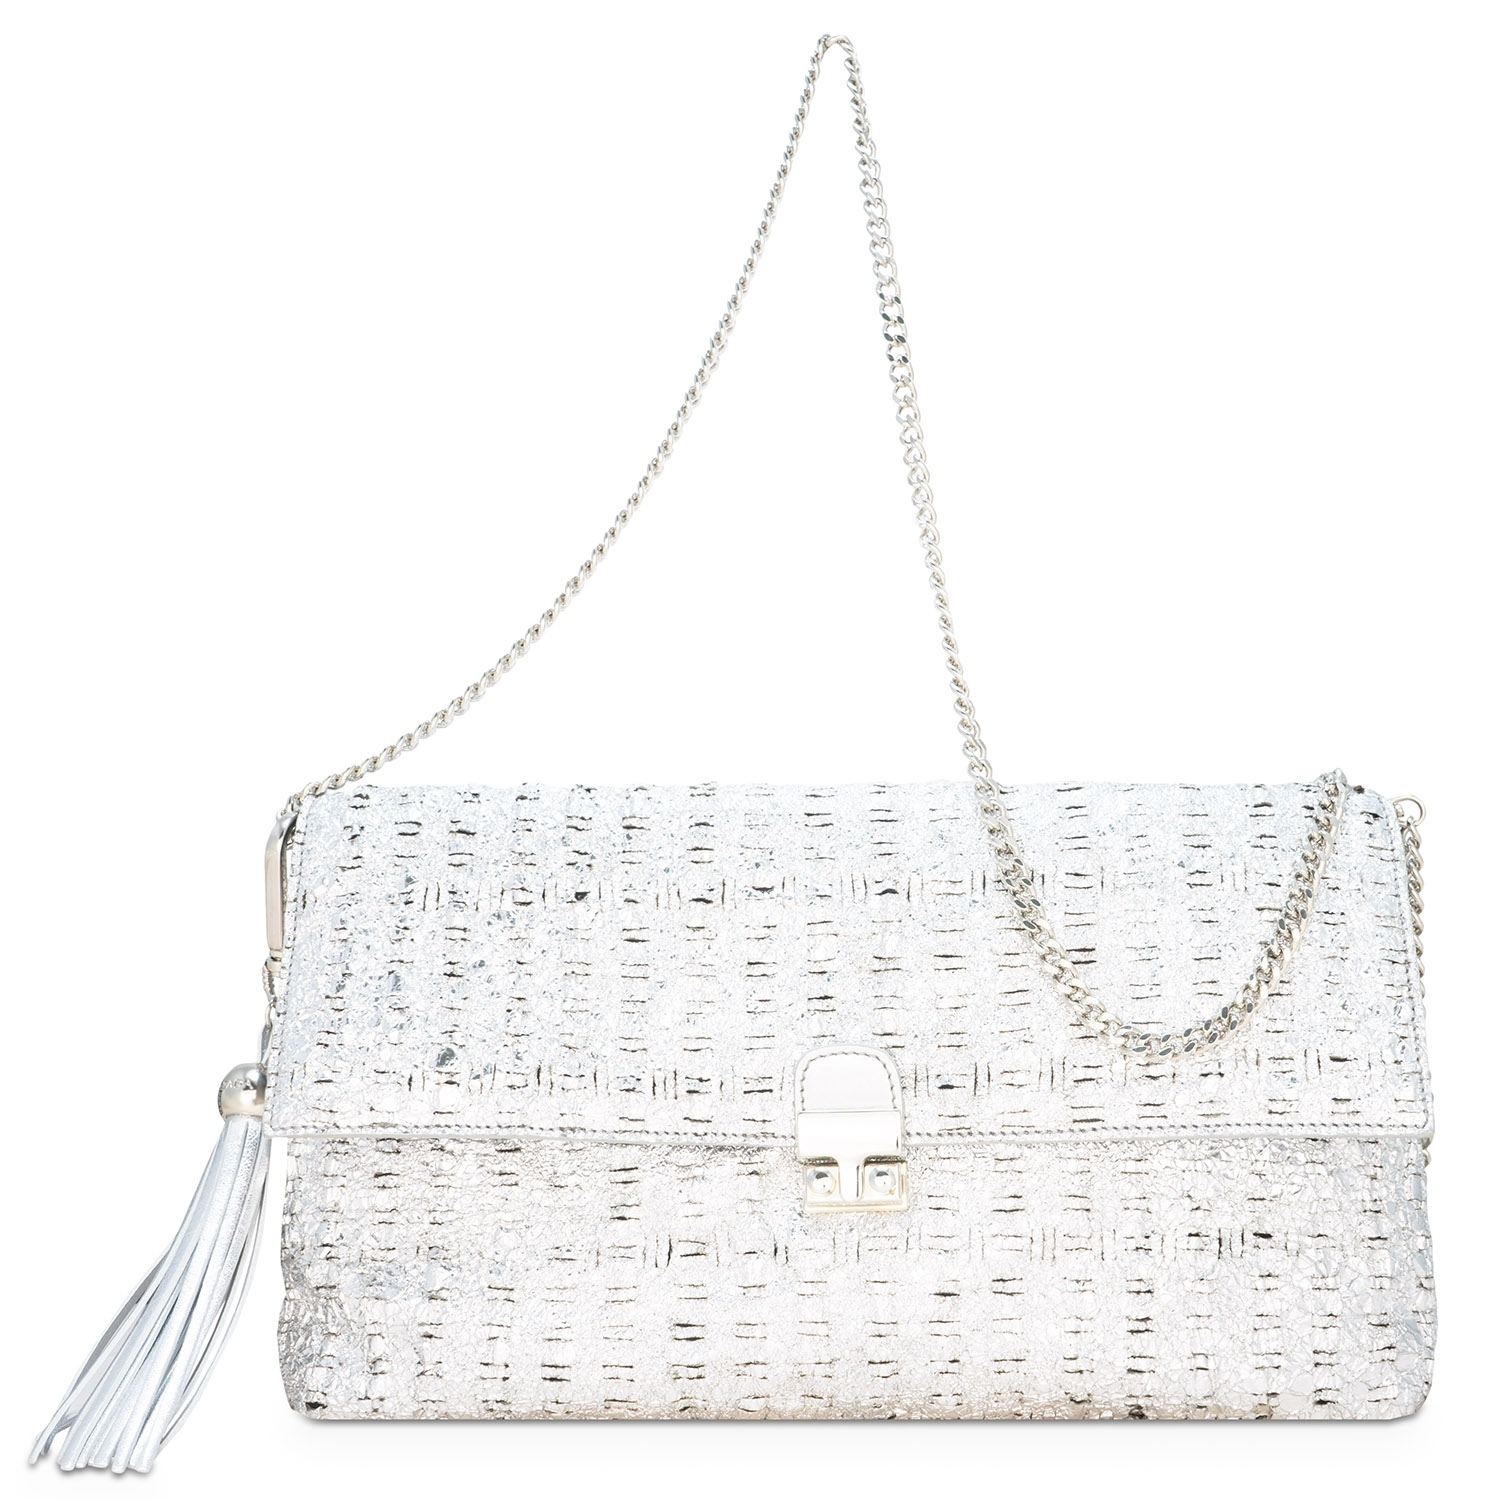 3455bd2e36c0 Loading zoom. Clutch Handbag from our Dama Blanca collection in Lamb Skin  (fantasy engraved) ...